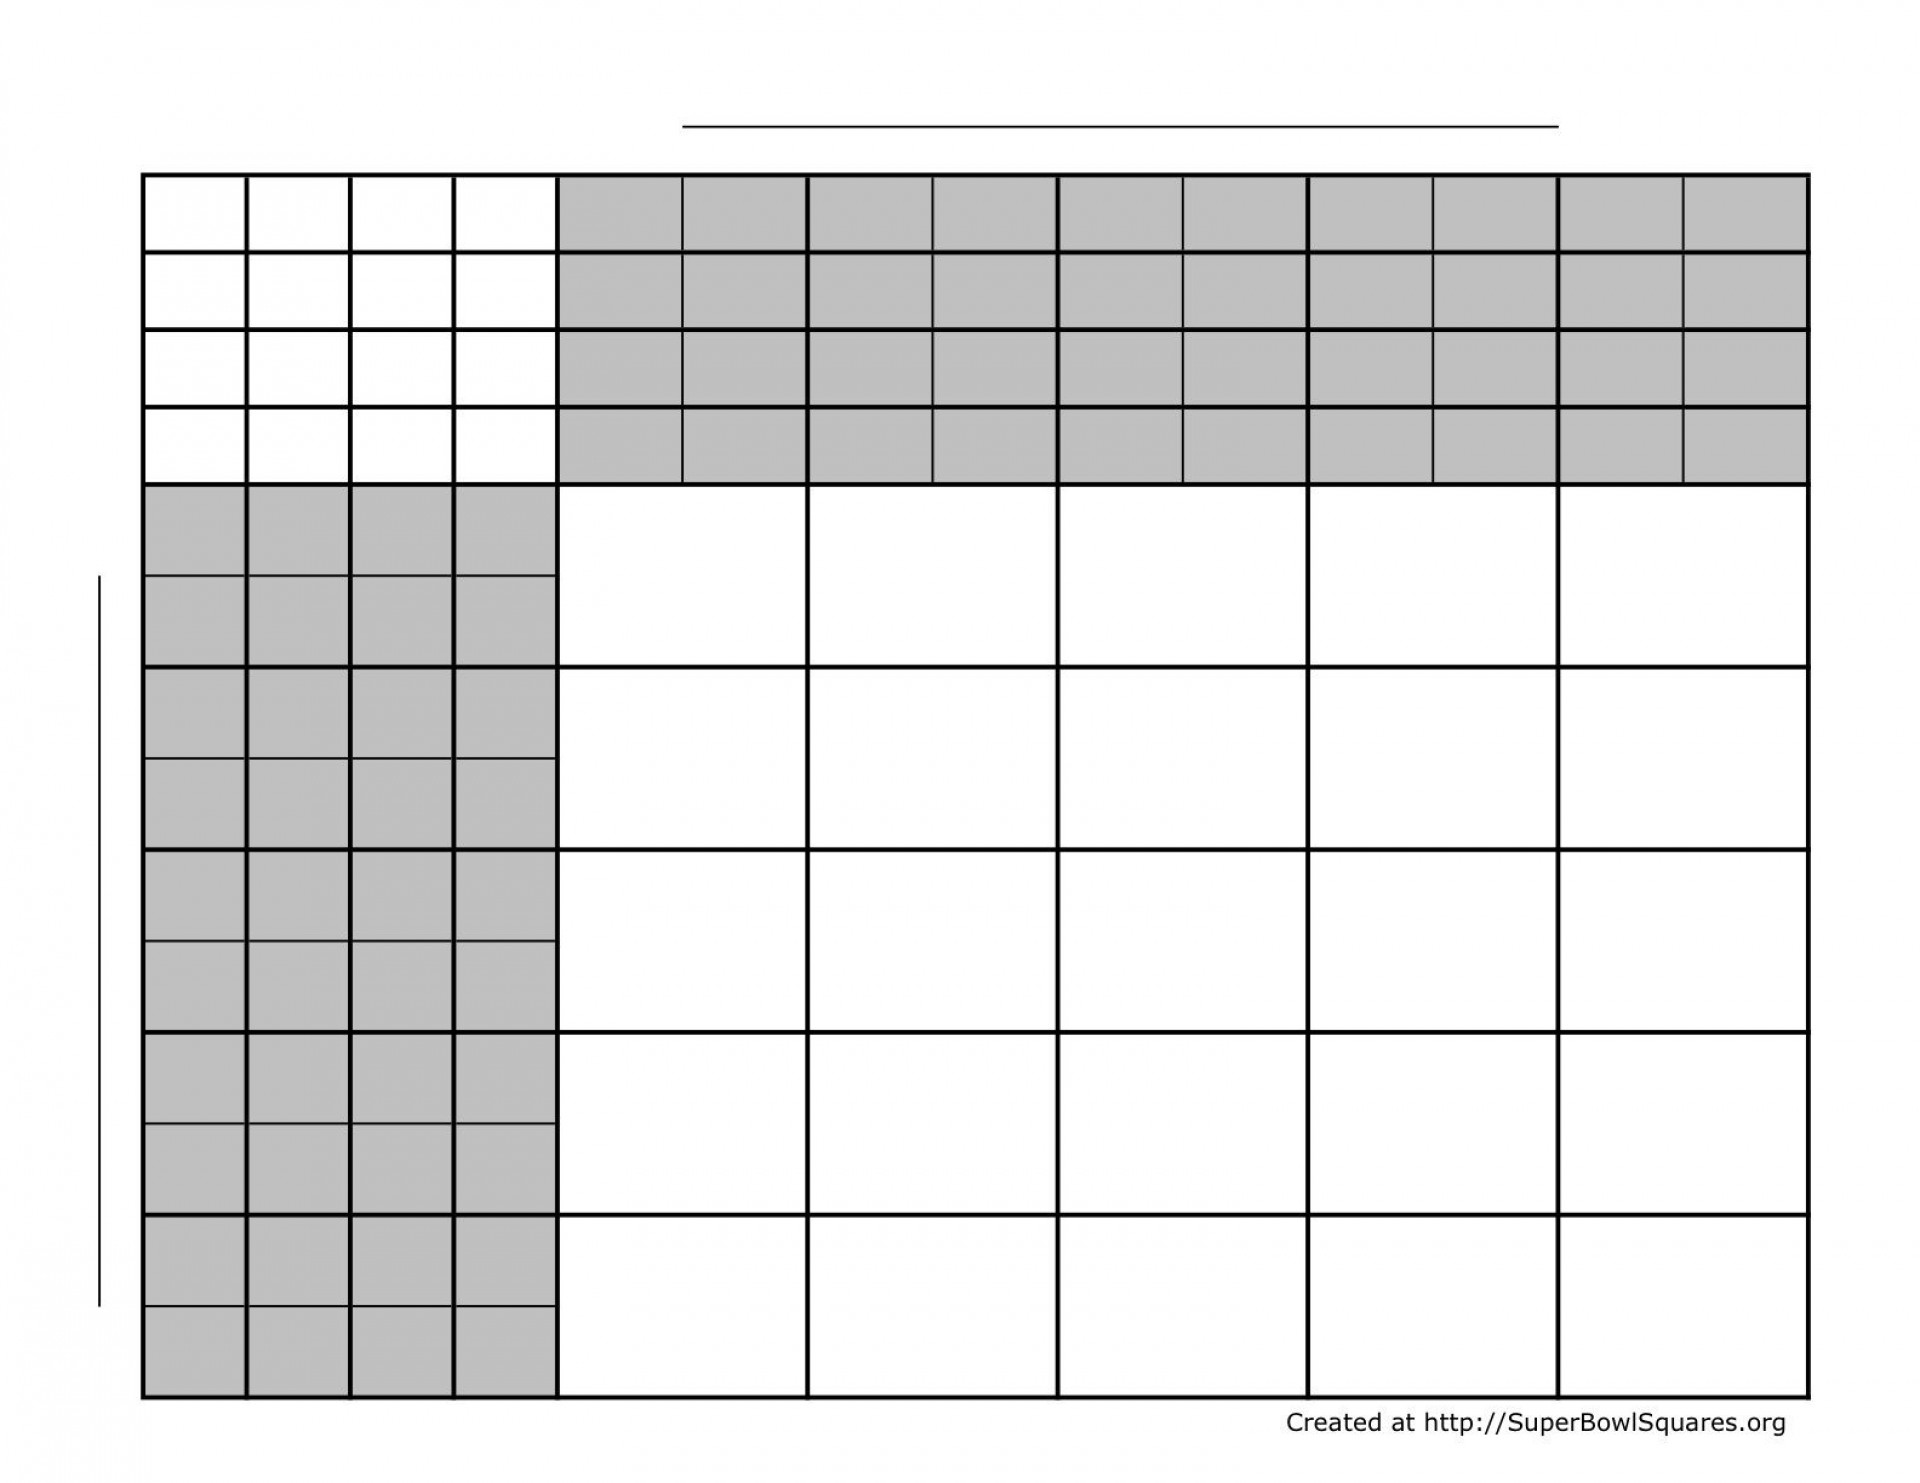 006 Formidable Football Square Template Excel High Def  Printable Pool1920